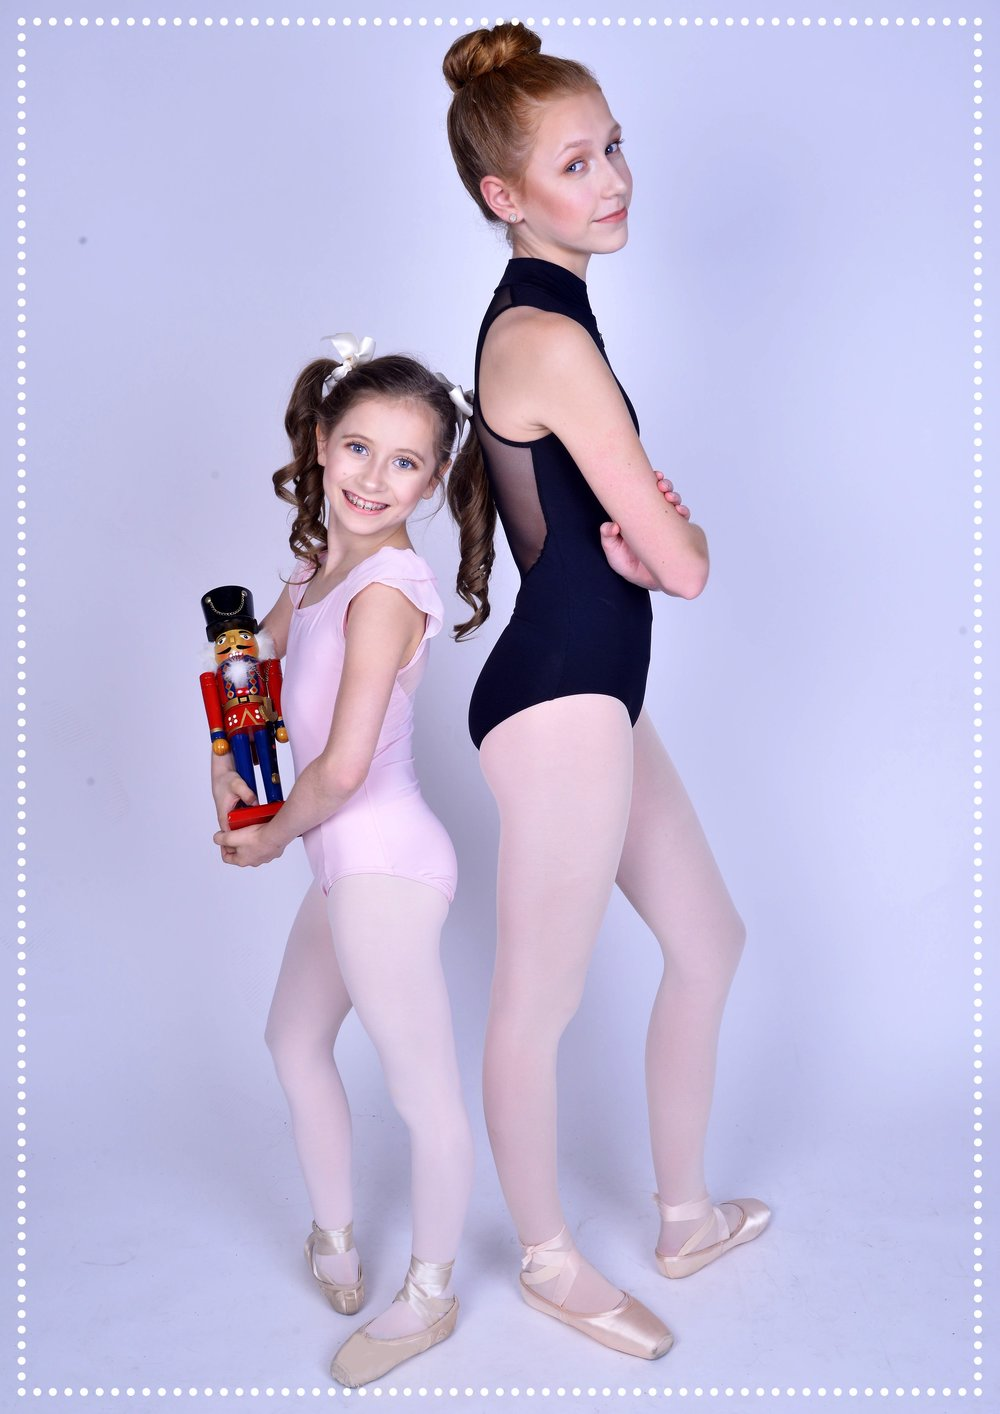 ELLIANA WALMSLEY as Gracie and CLARA YOUNG as Scarlett in the World Premiere of DANCE DIVAS NUTCRACKER. (photography by Michael Kushner)